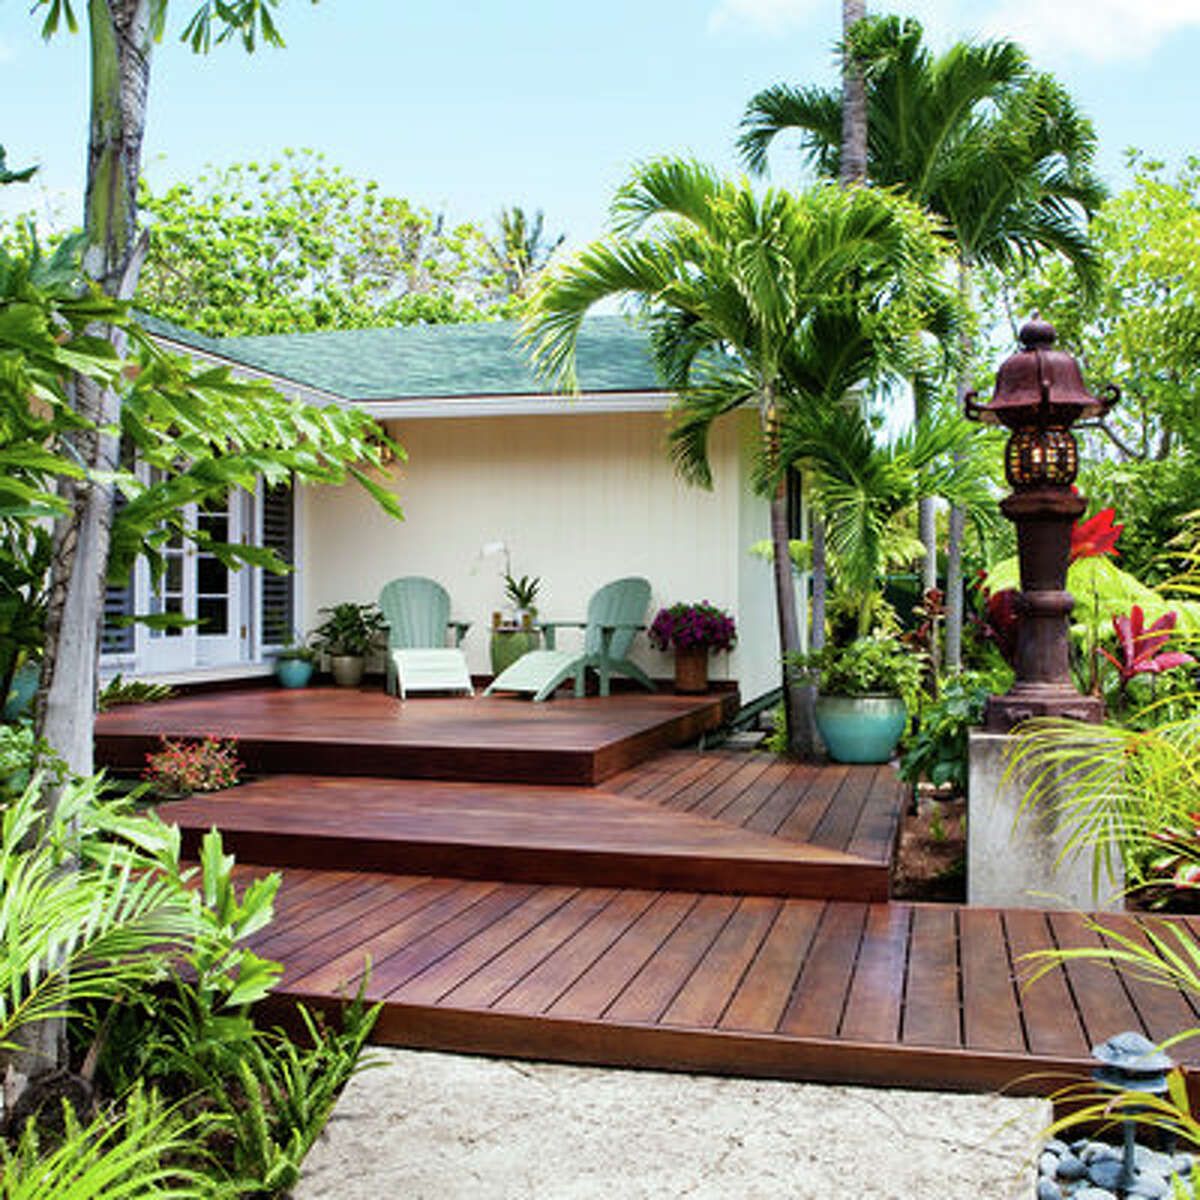 Front-yard entry deck Instead of stairs, a three-level deck steps up to the front door of this raised post-and-pier-house on the island of Oahu. Tropical accessories on the deck and throughout the garden turned this entry into a personal paradise. More about this front yard